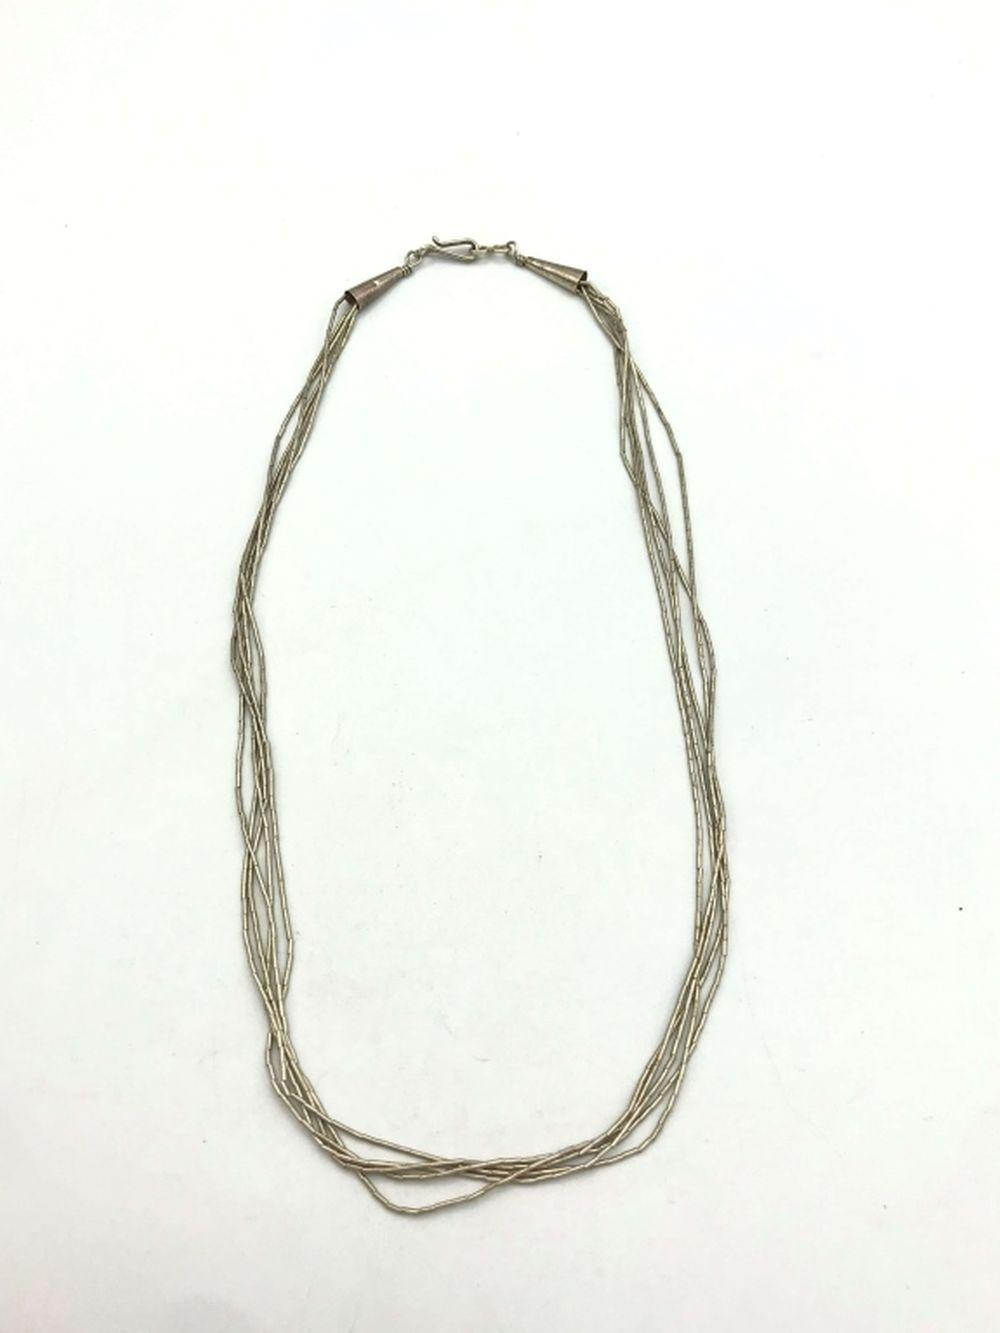 LIQUID LAYERED STERLING SILVER NECKLACE